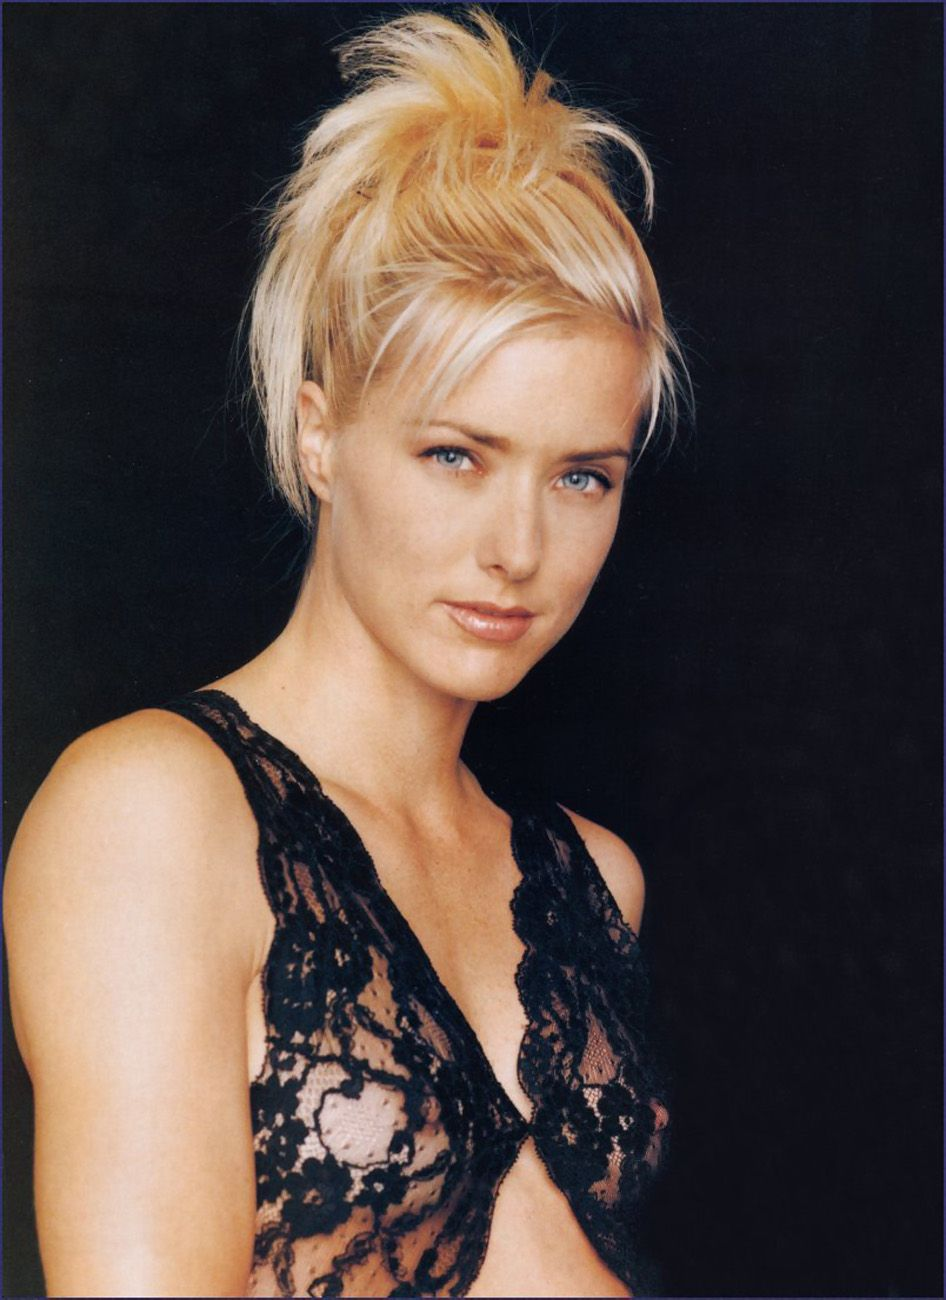 61 Hot Pictures Of Téa Leoni Are A Treat For Her Fans | Best Of Comic Books